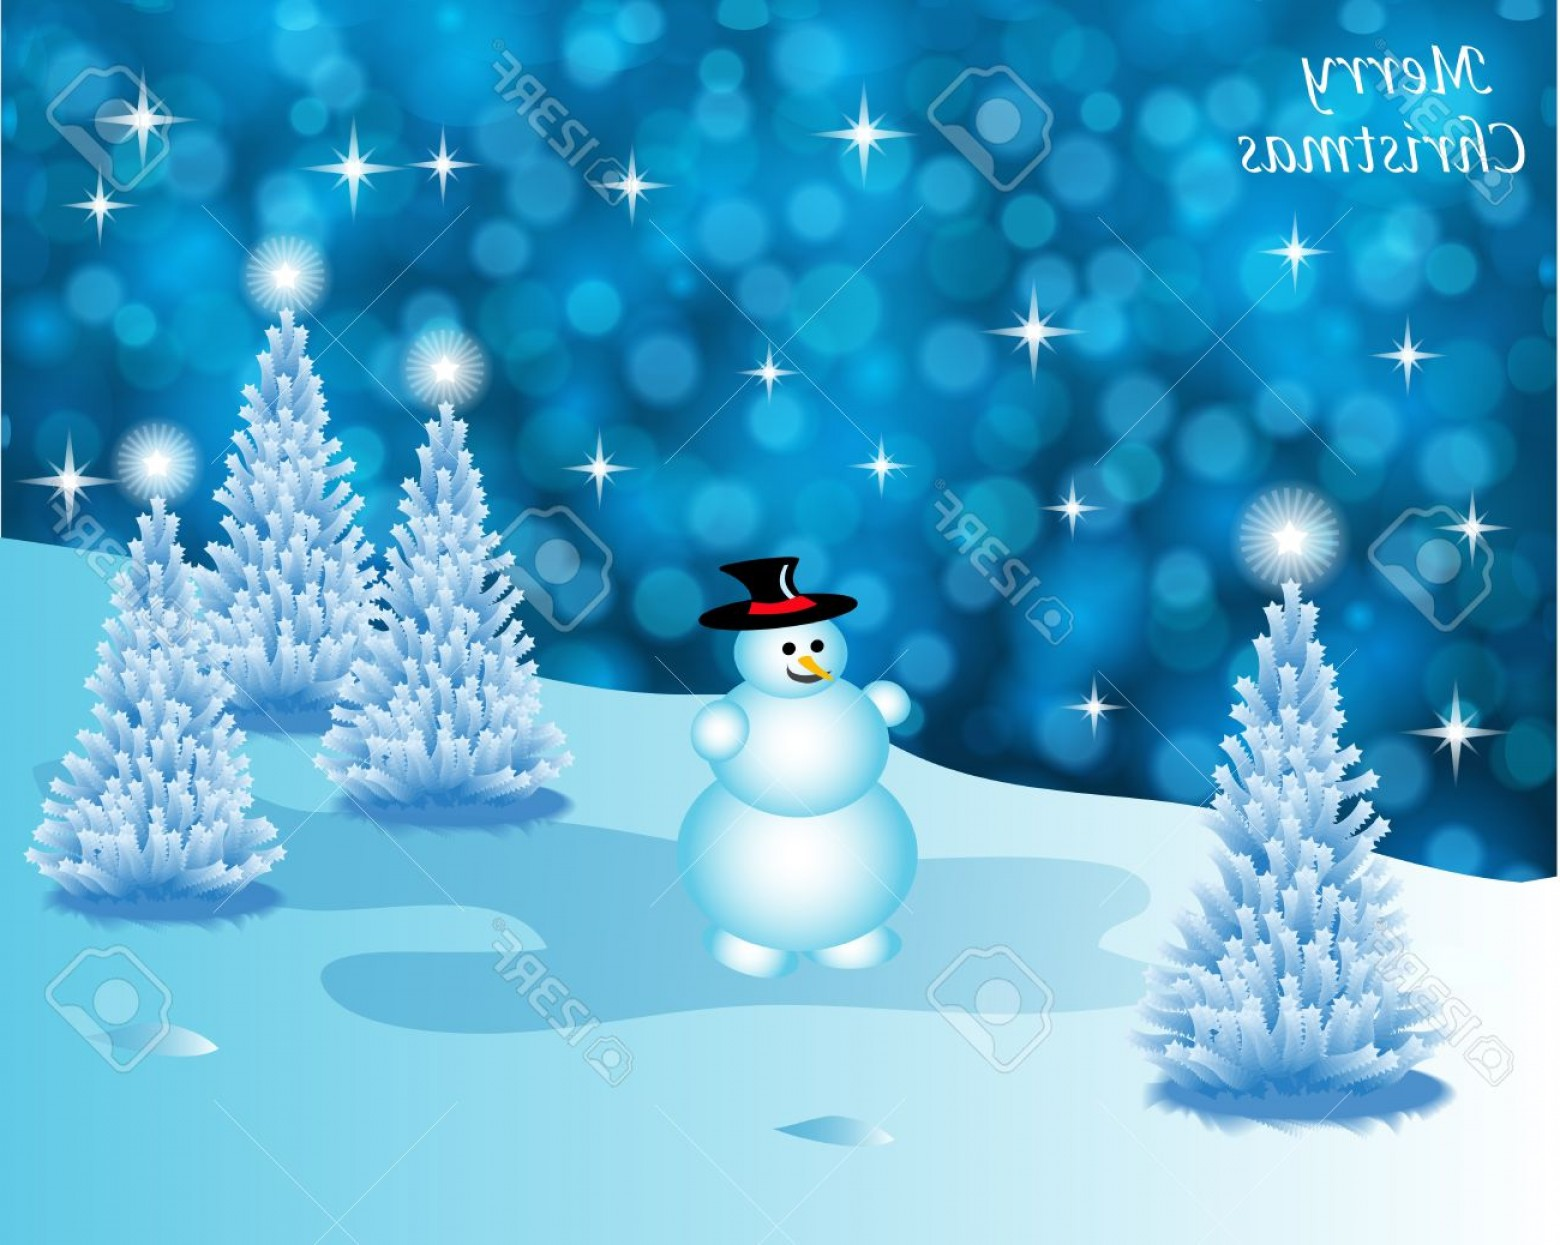 Free Winter Vector: Photoabstract Winter Vector Background Scene With Snowy Christmas Trees And A Snowman